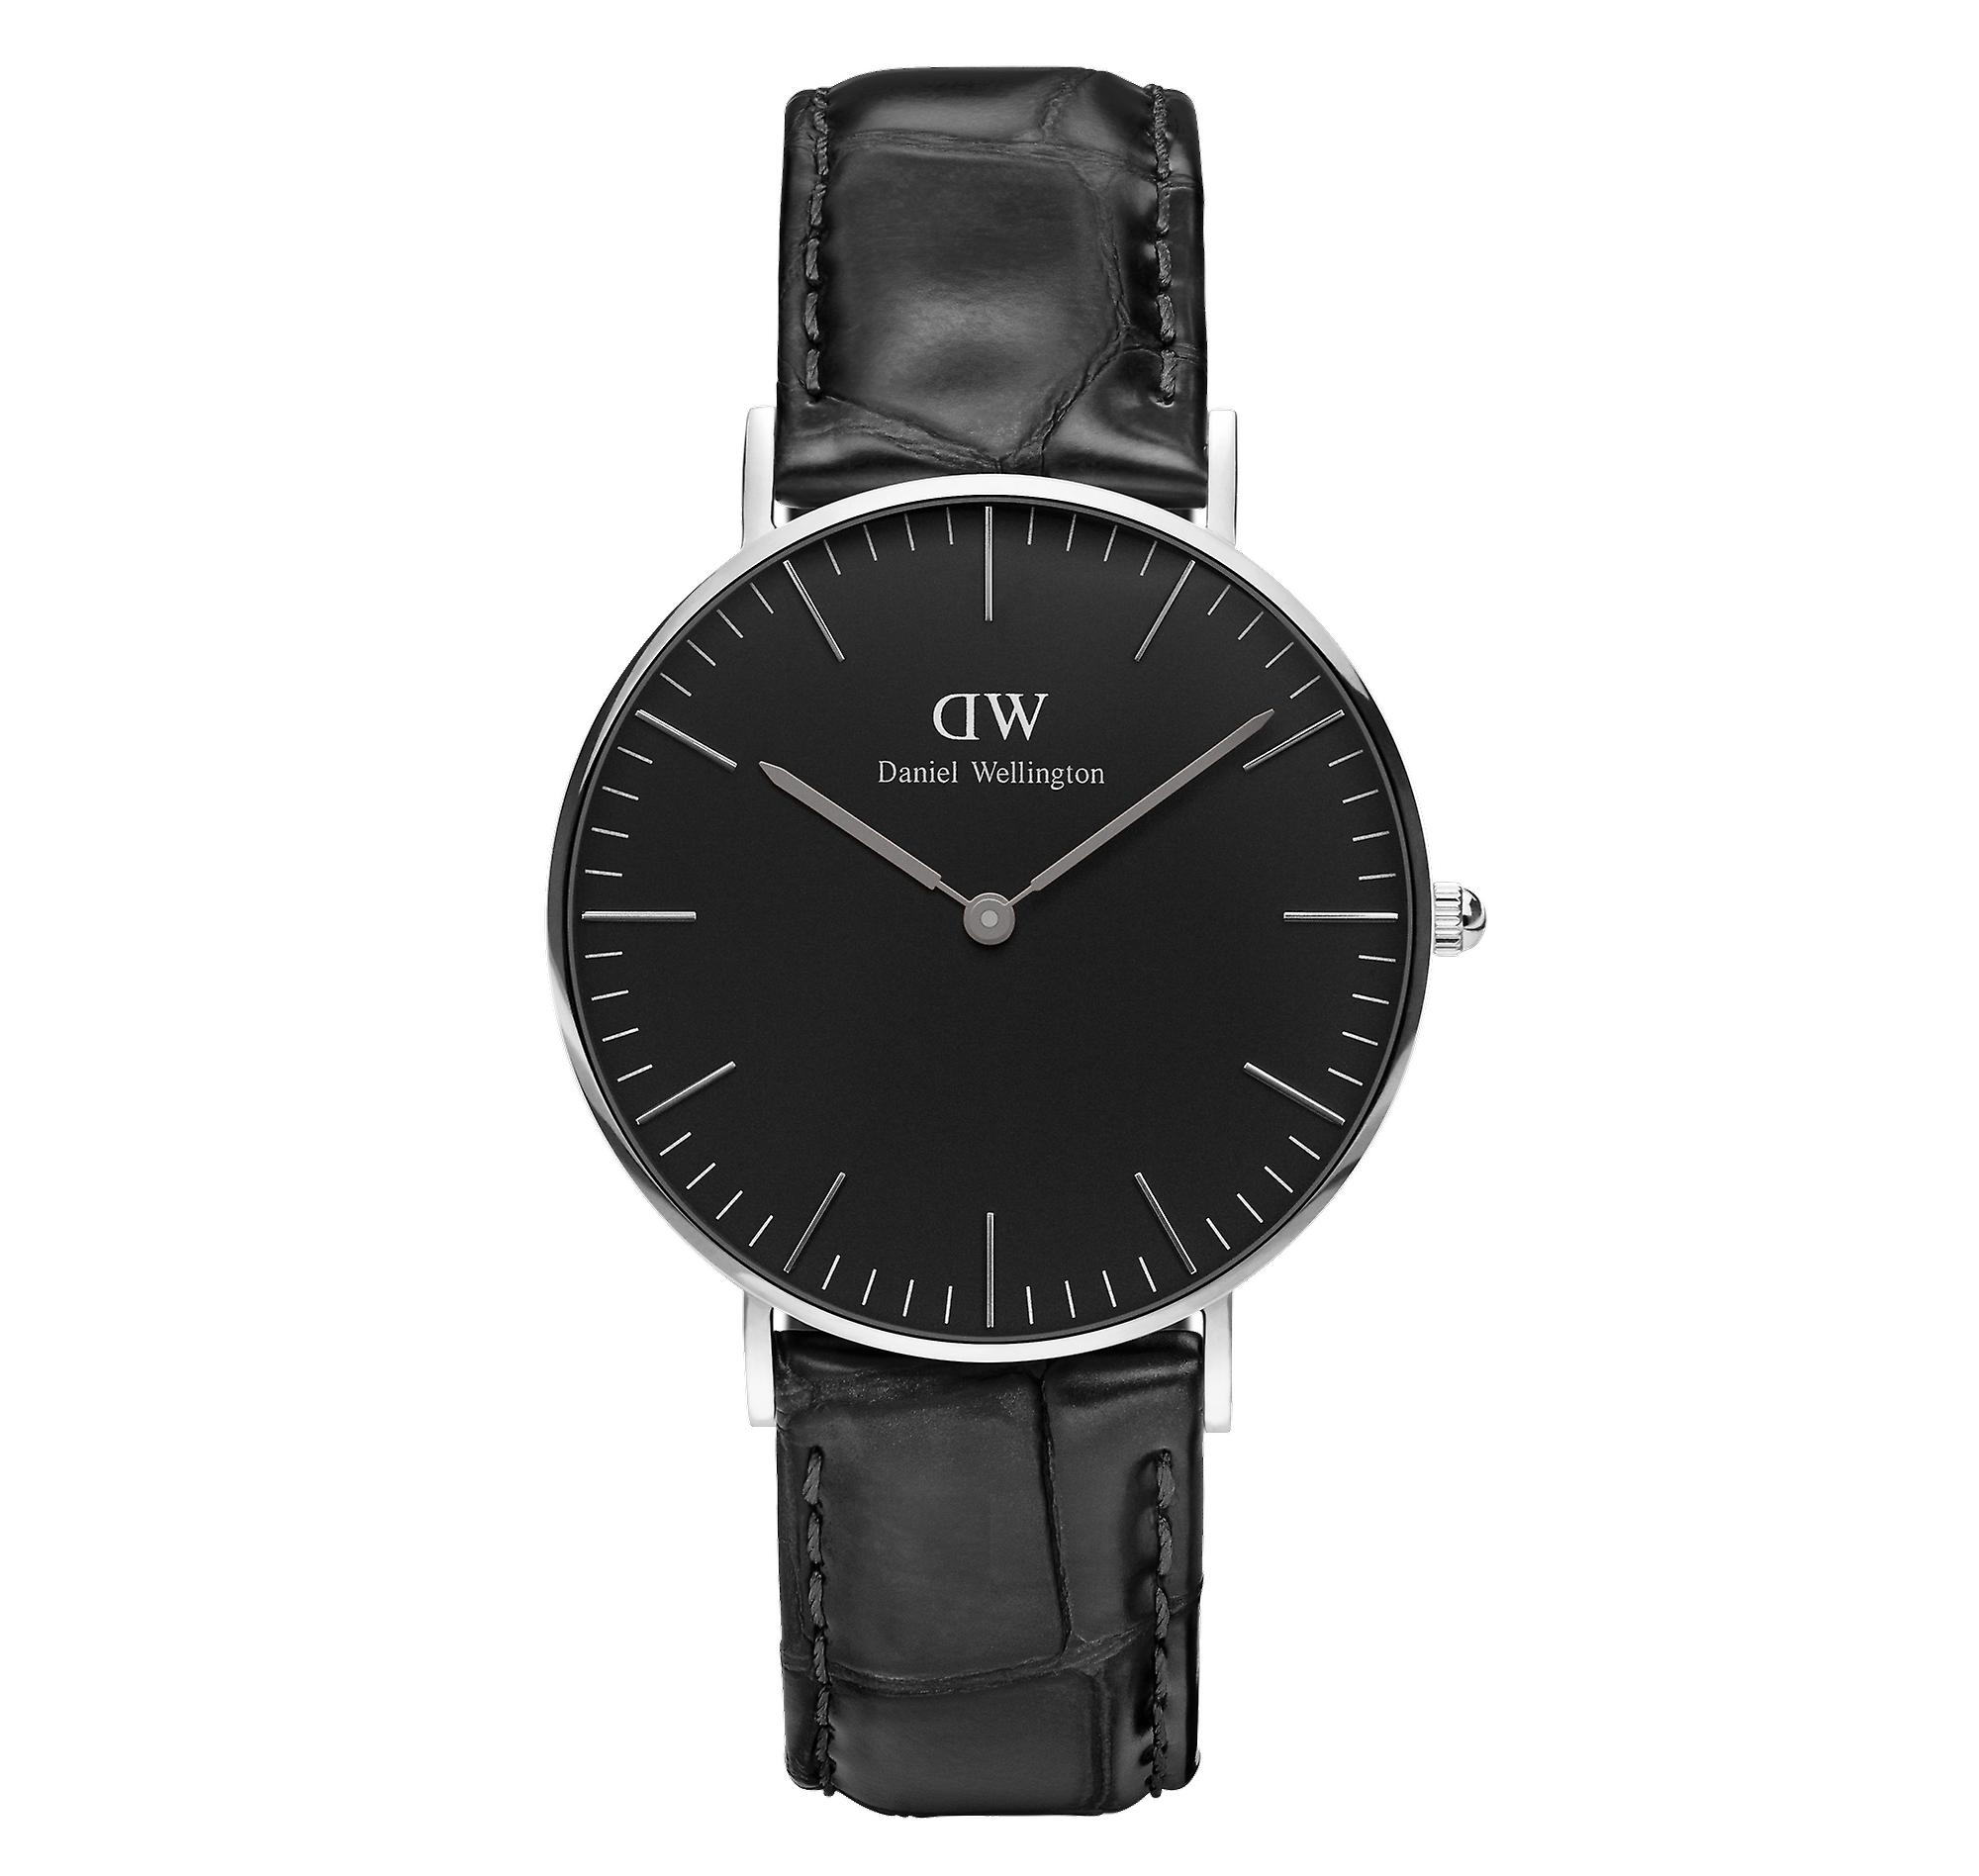 Daniel Wellington Classic Black Stainless Steel Leather Strap Reading Unisex Watch DW00100147 36mm Case